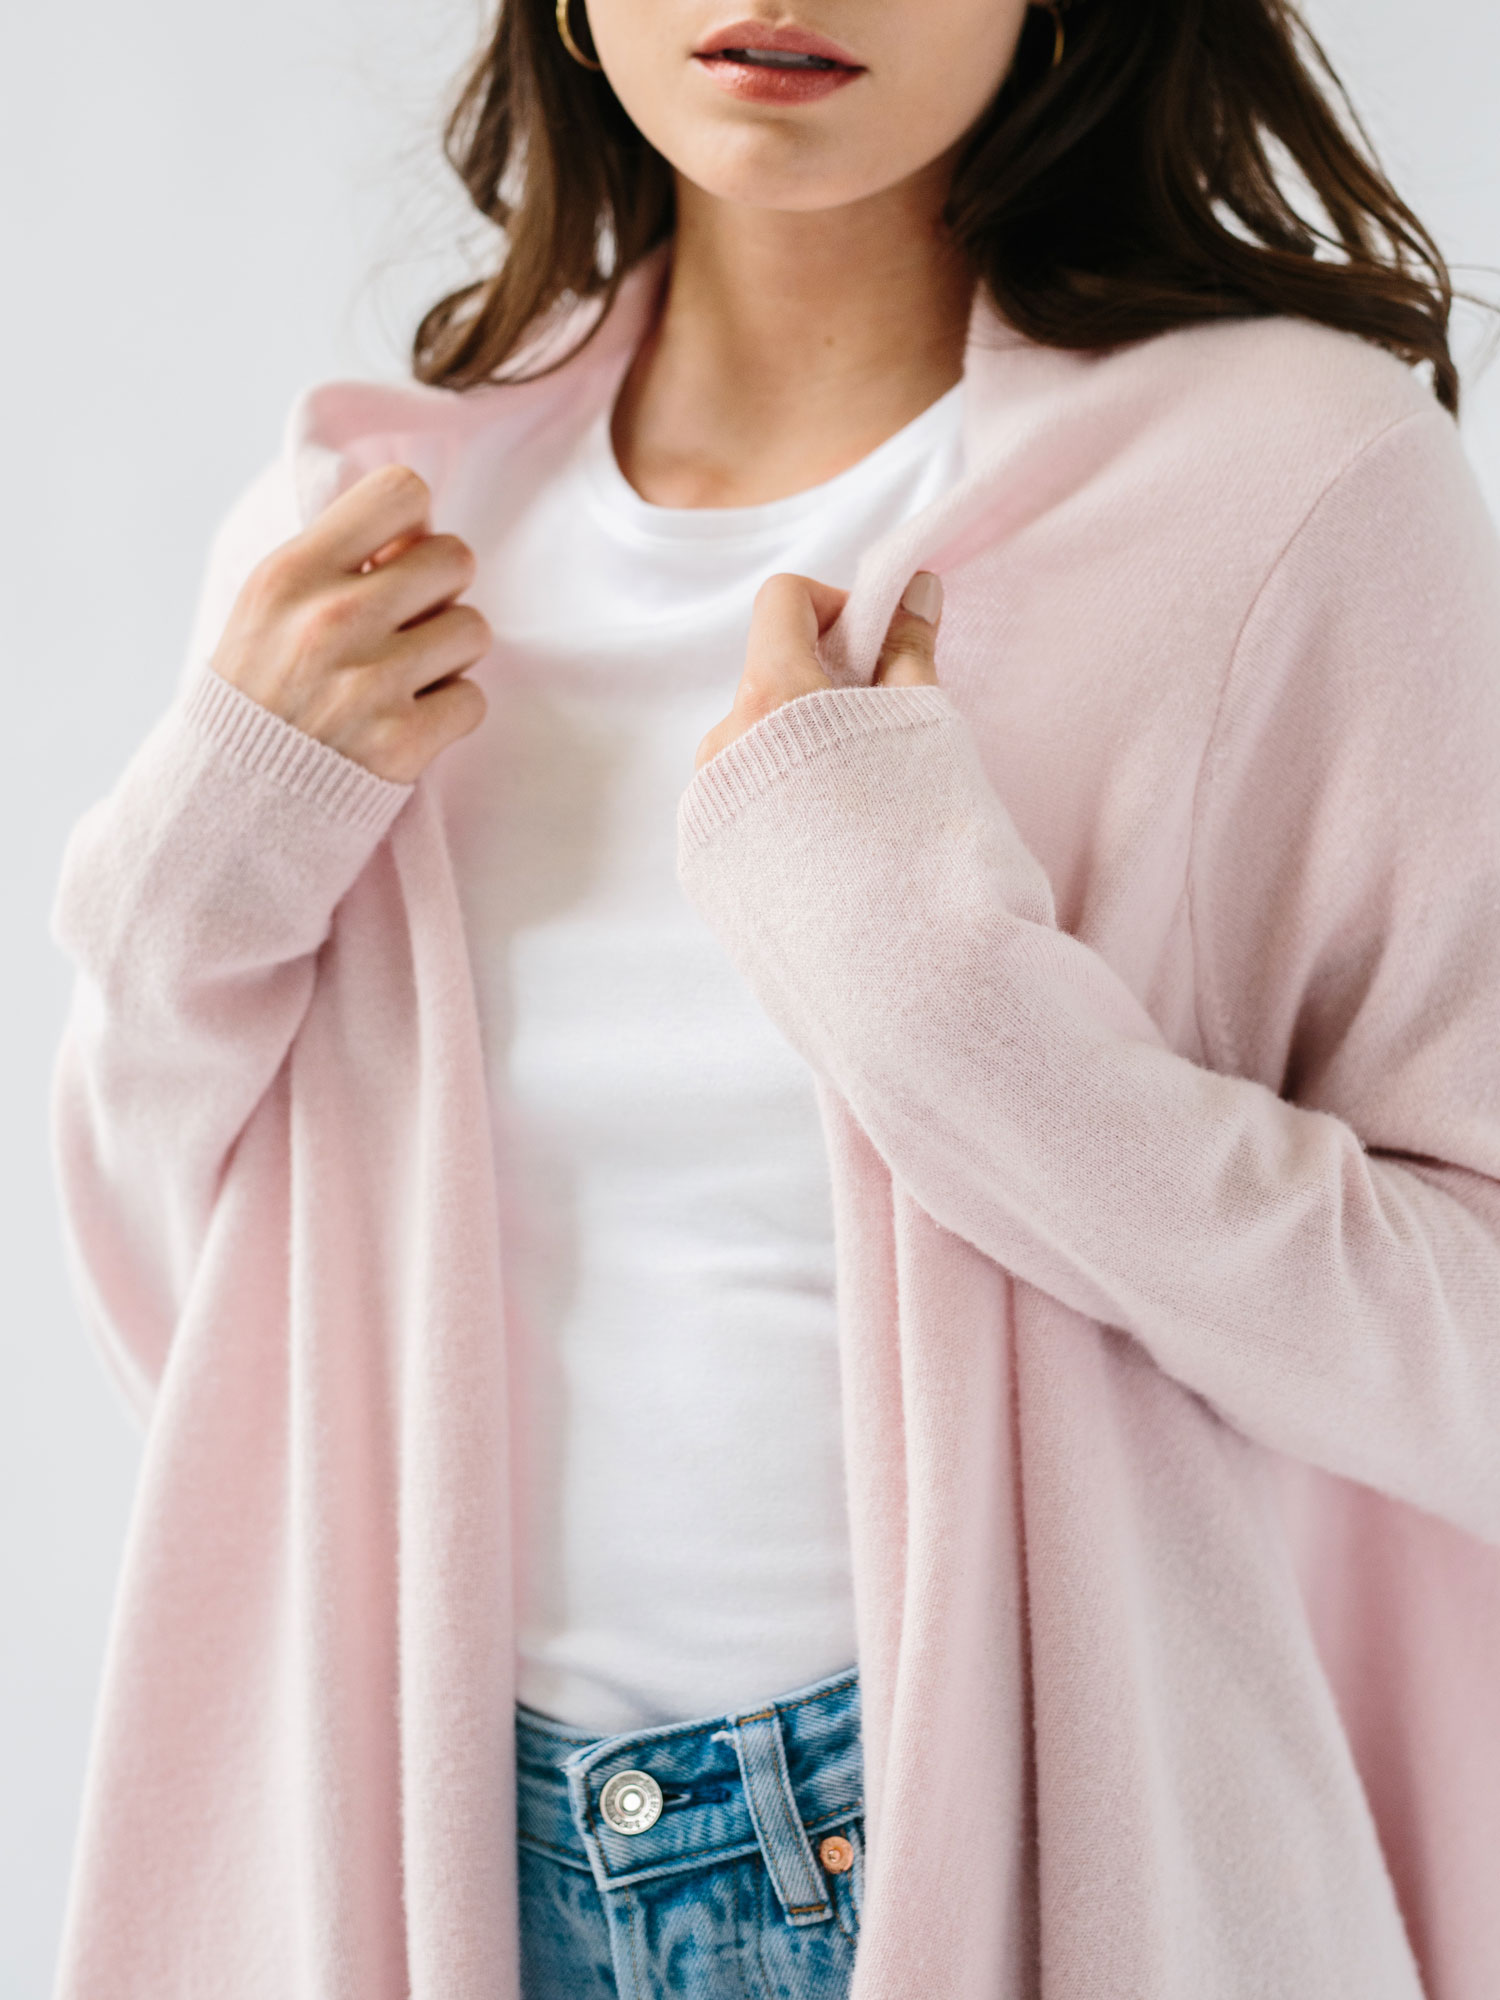 pink cashmere gift for woman